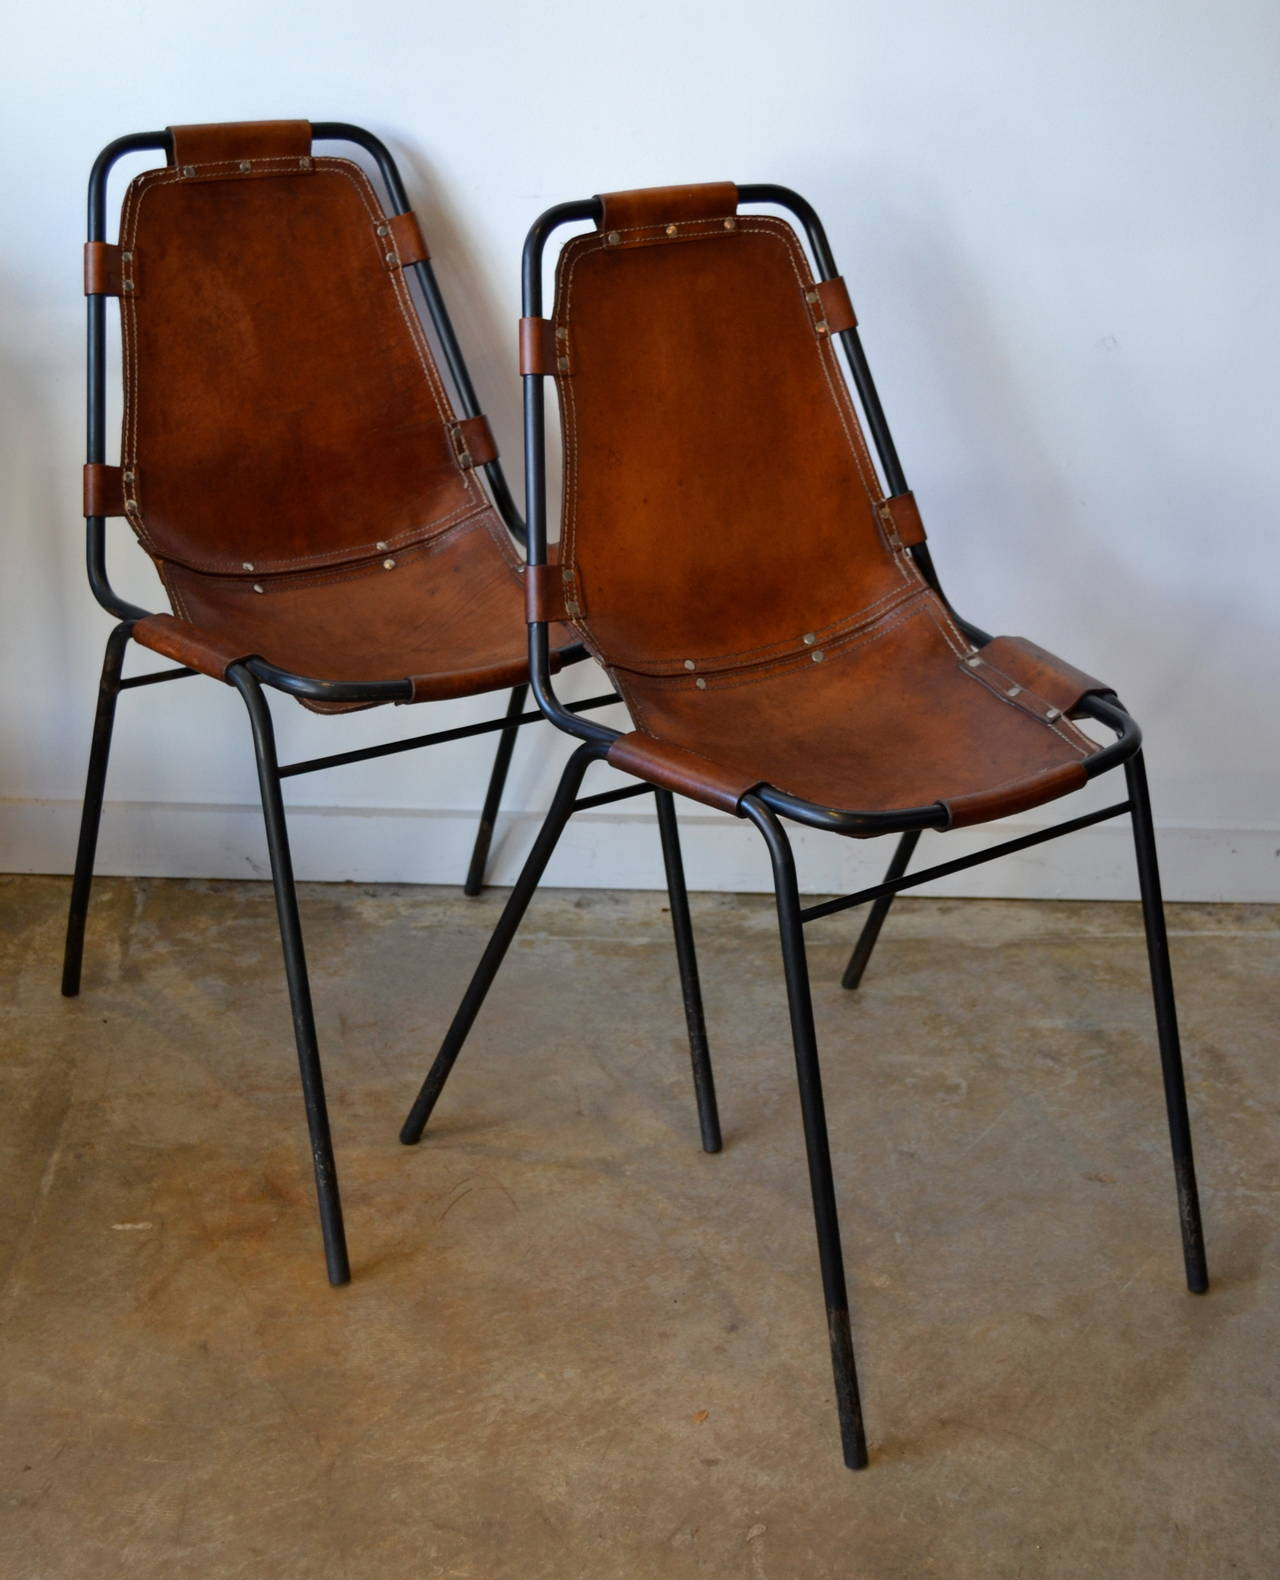 charlotte perriand les arcs metal and leather side chairs at 1stdibs. Black Bedroom Furniture Sets. Home Design Ideas